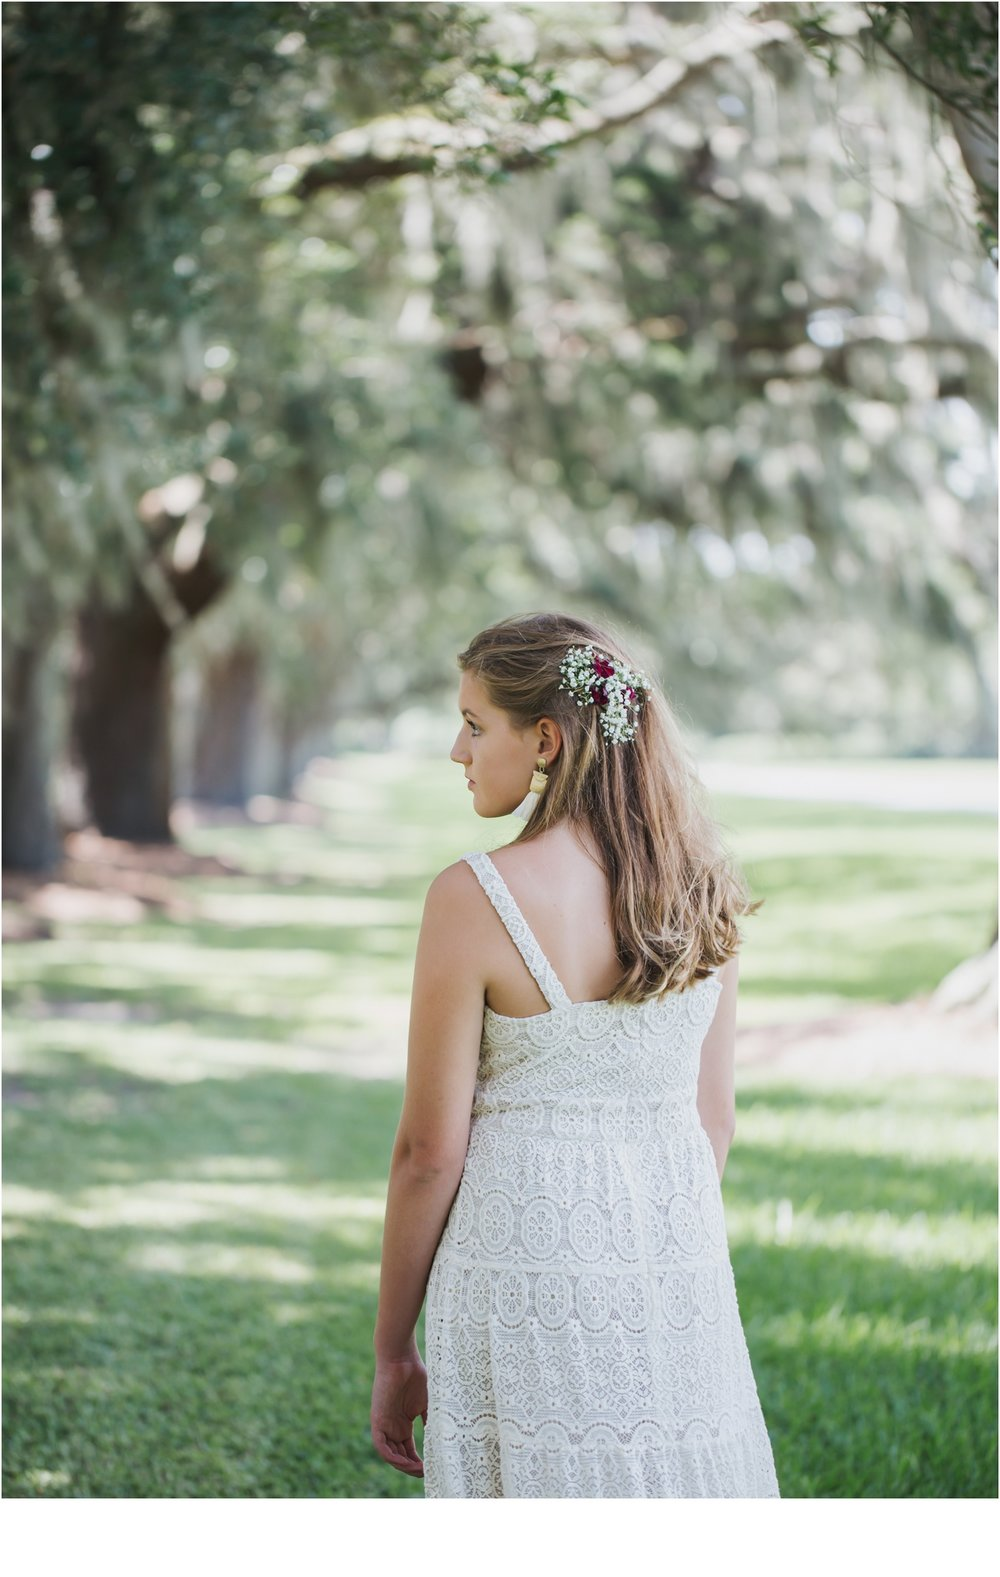 Rainey_Gregg_Photography_St._Simons_Island_Georgia_California_Wedding_Portrait_Photography_1108.jpg